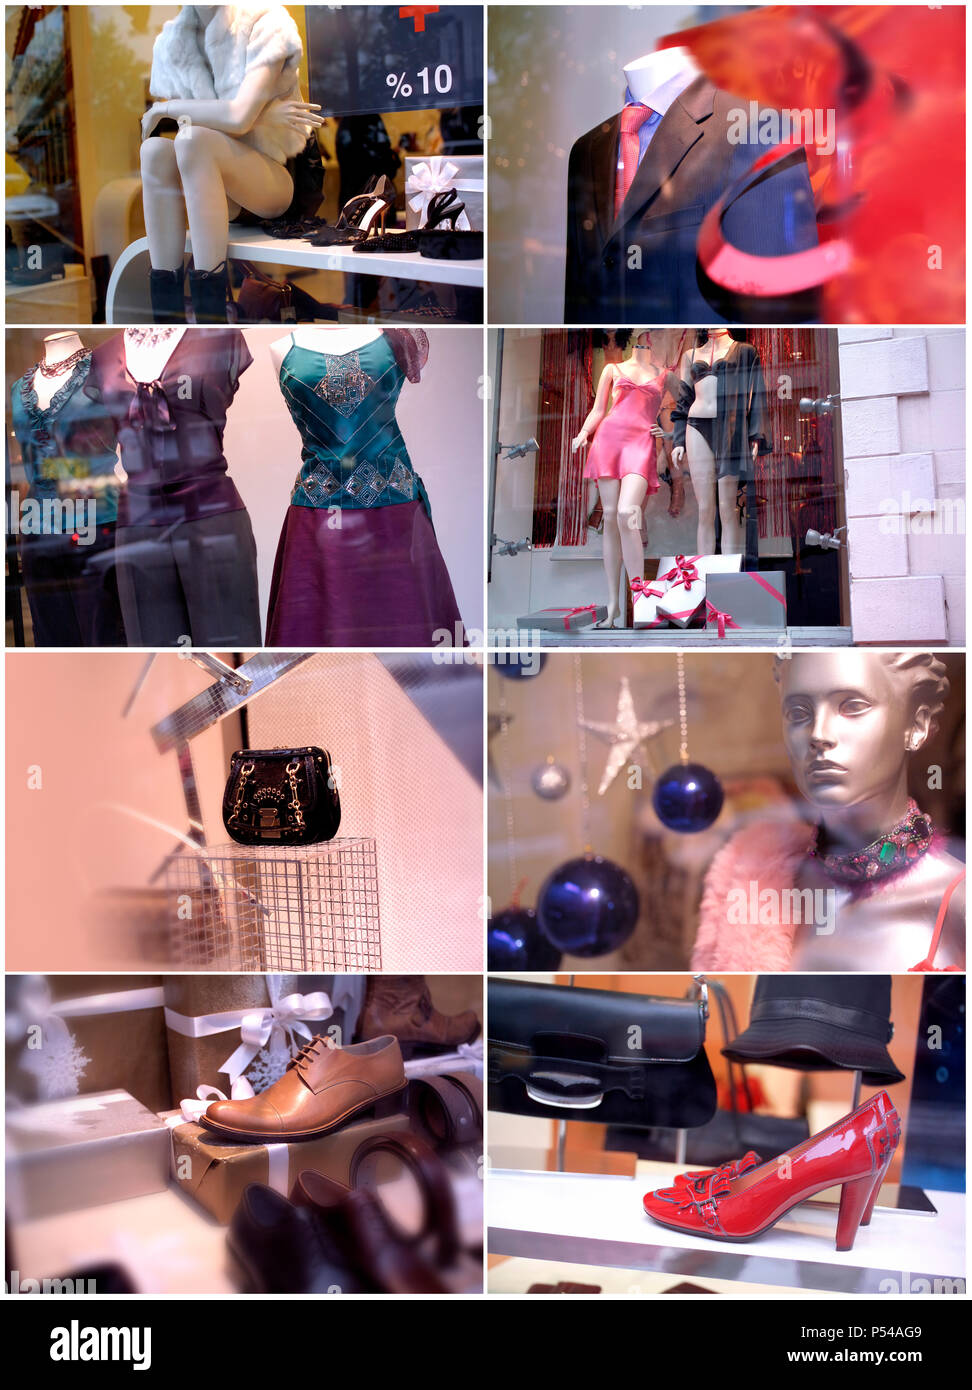 an image of store display window - Stock Image